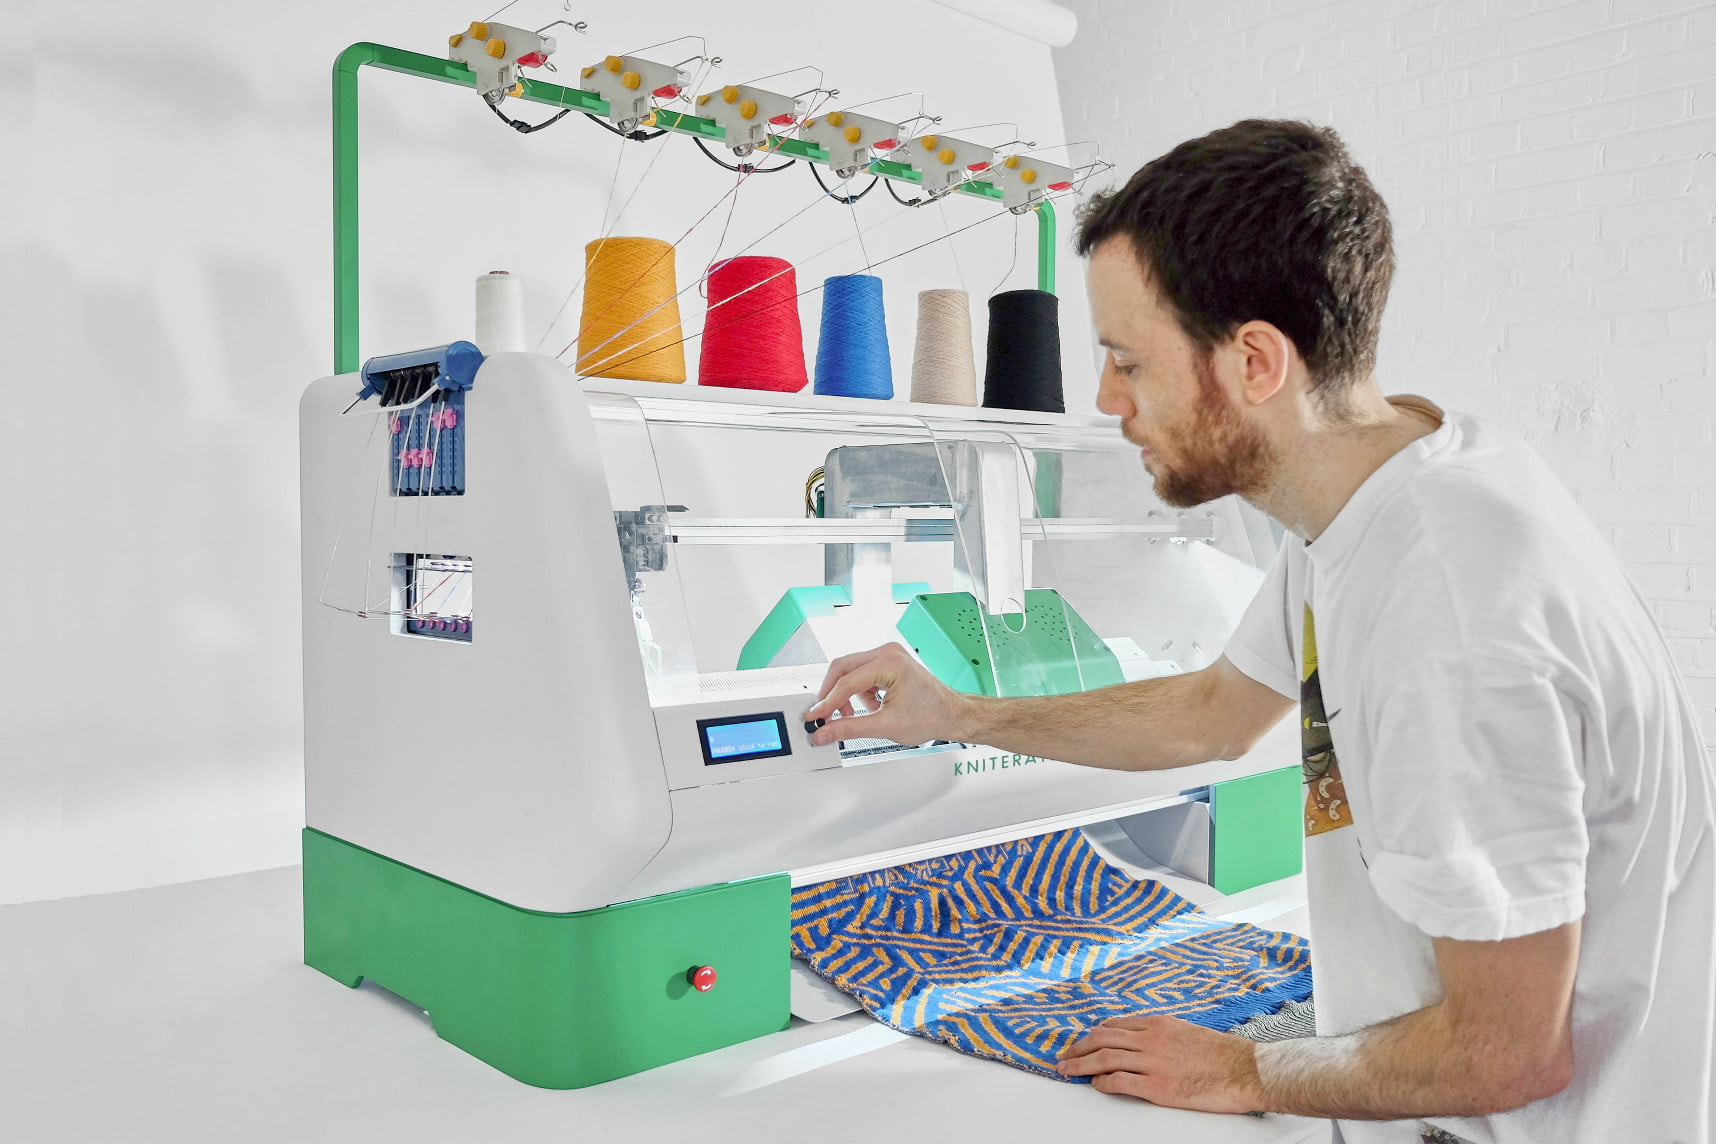 awesome tech you cant buy yet wiivv cora kniterate4